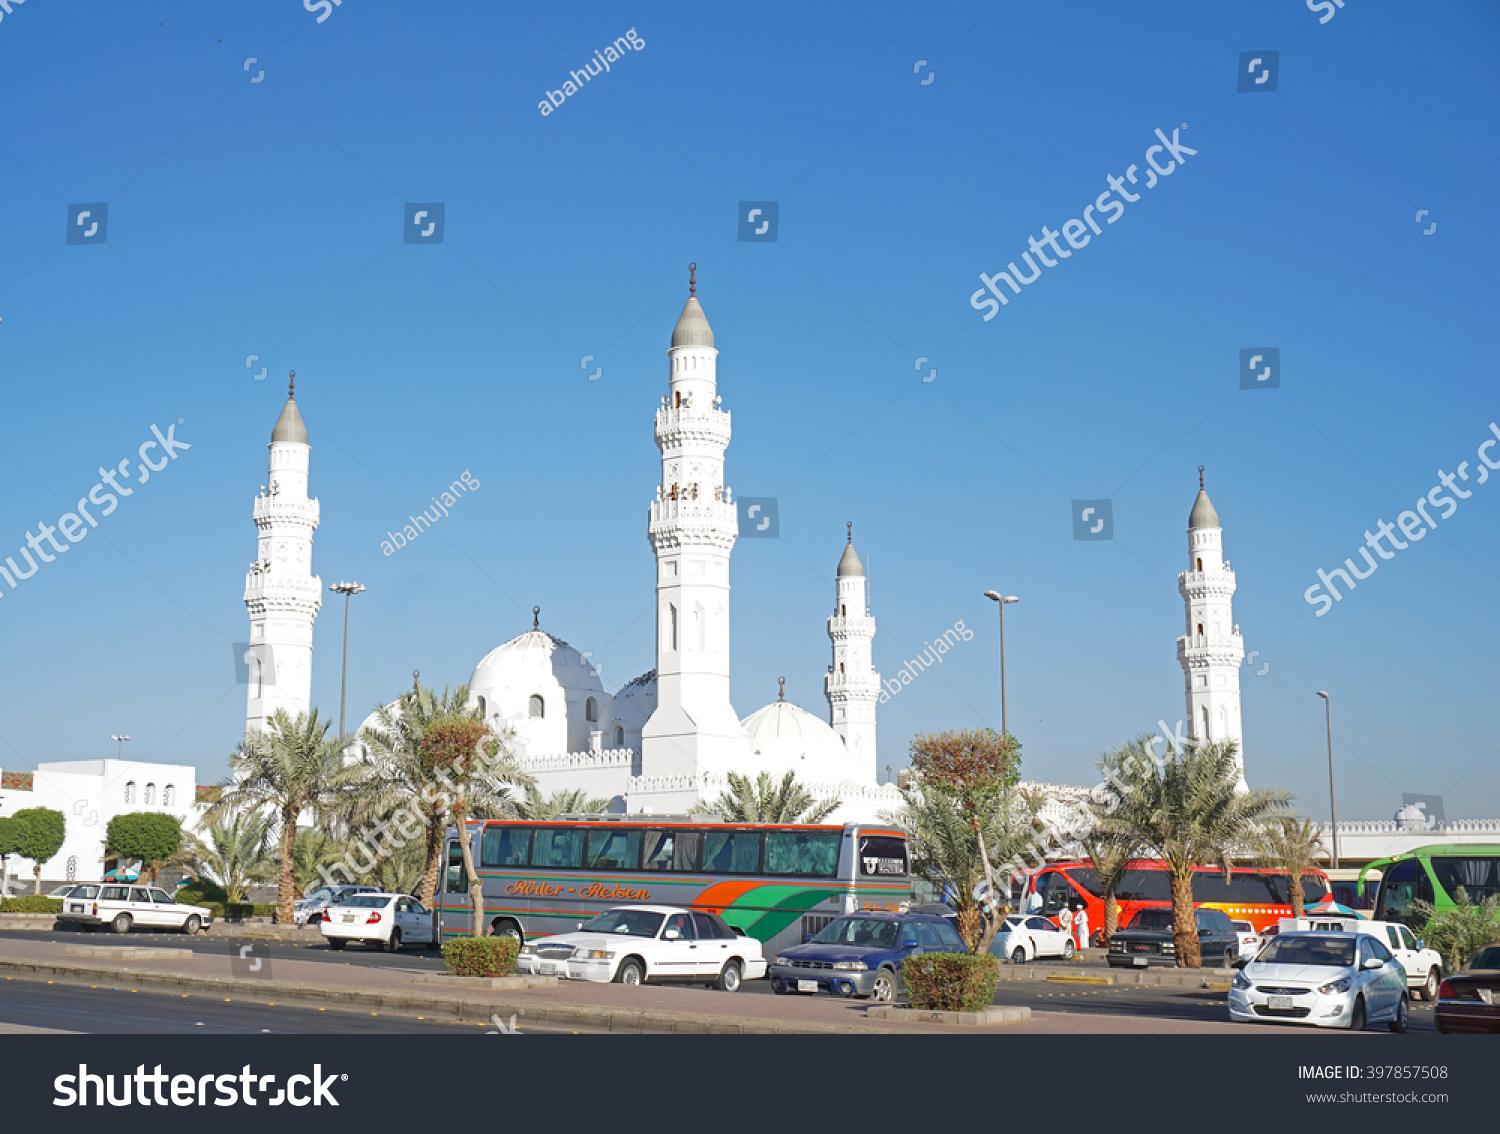 MEDINA SAUDI ARABIA OCT 29 A view of Masjid Quba Oct 29 2014 in Medina Saudi Arabia This is the first mosque built by Prophet Muhammad peace be upon him in Islam